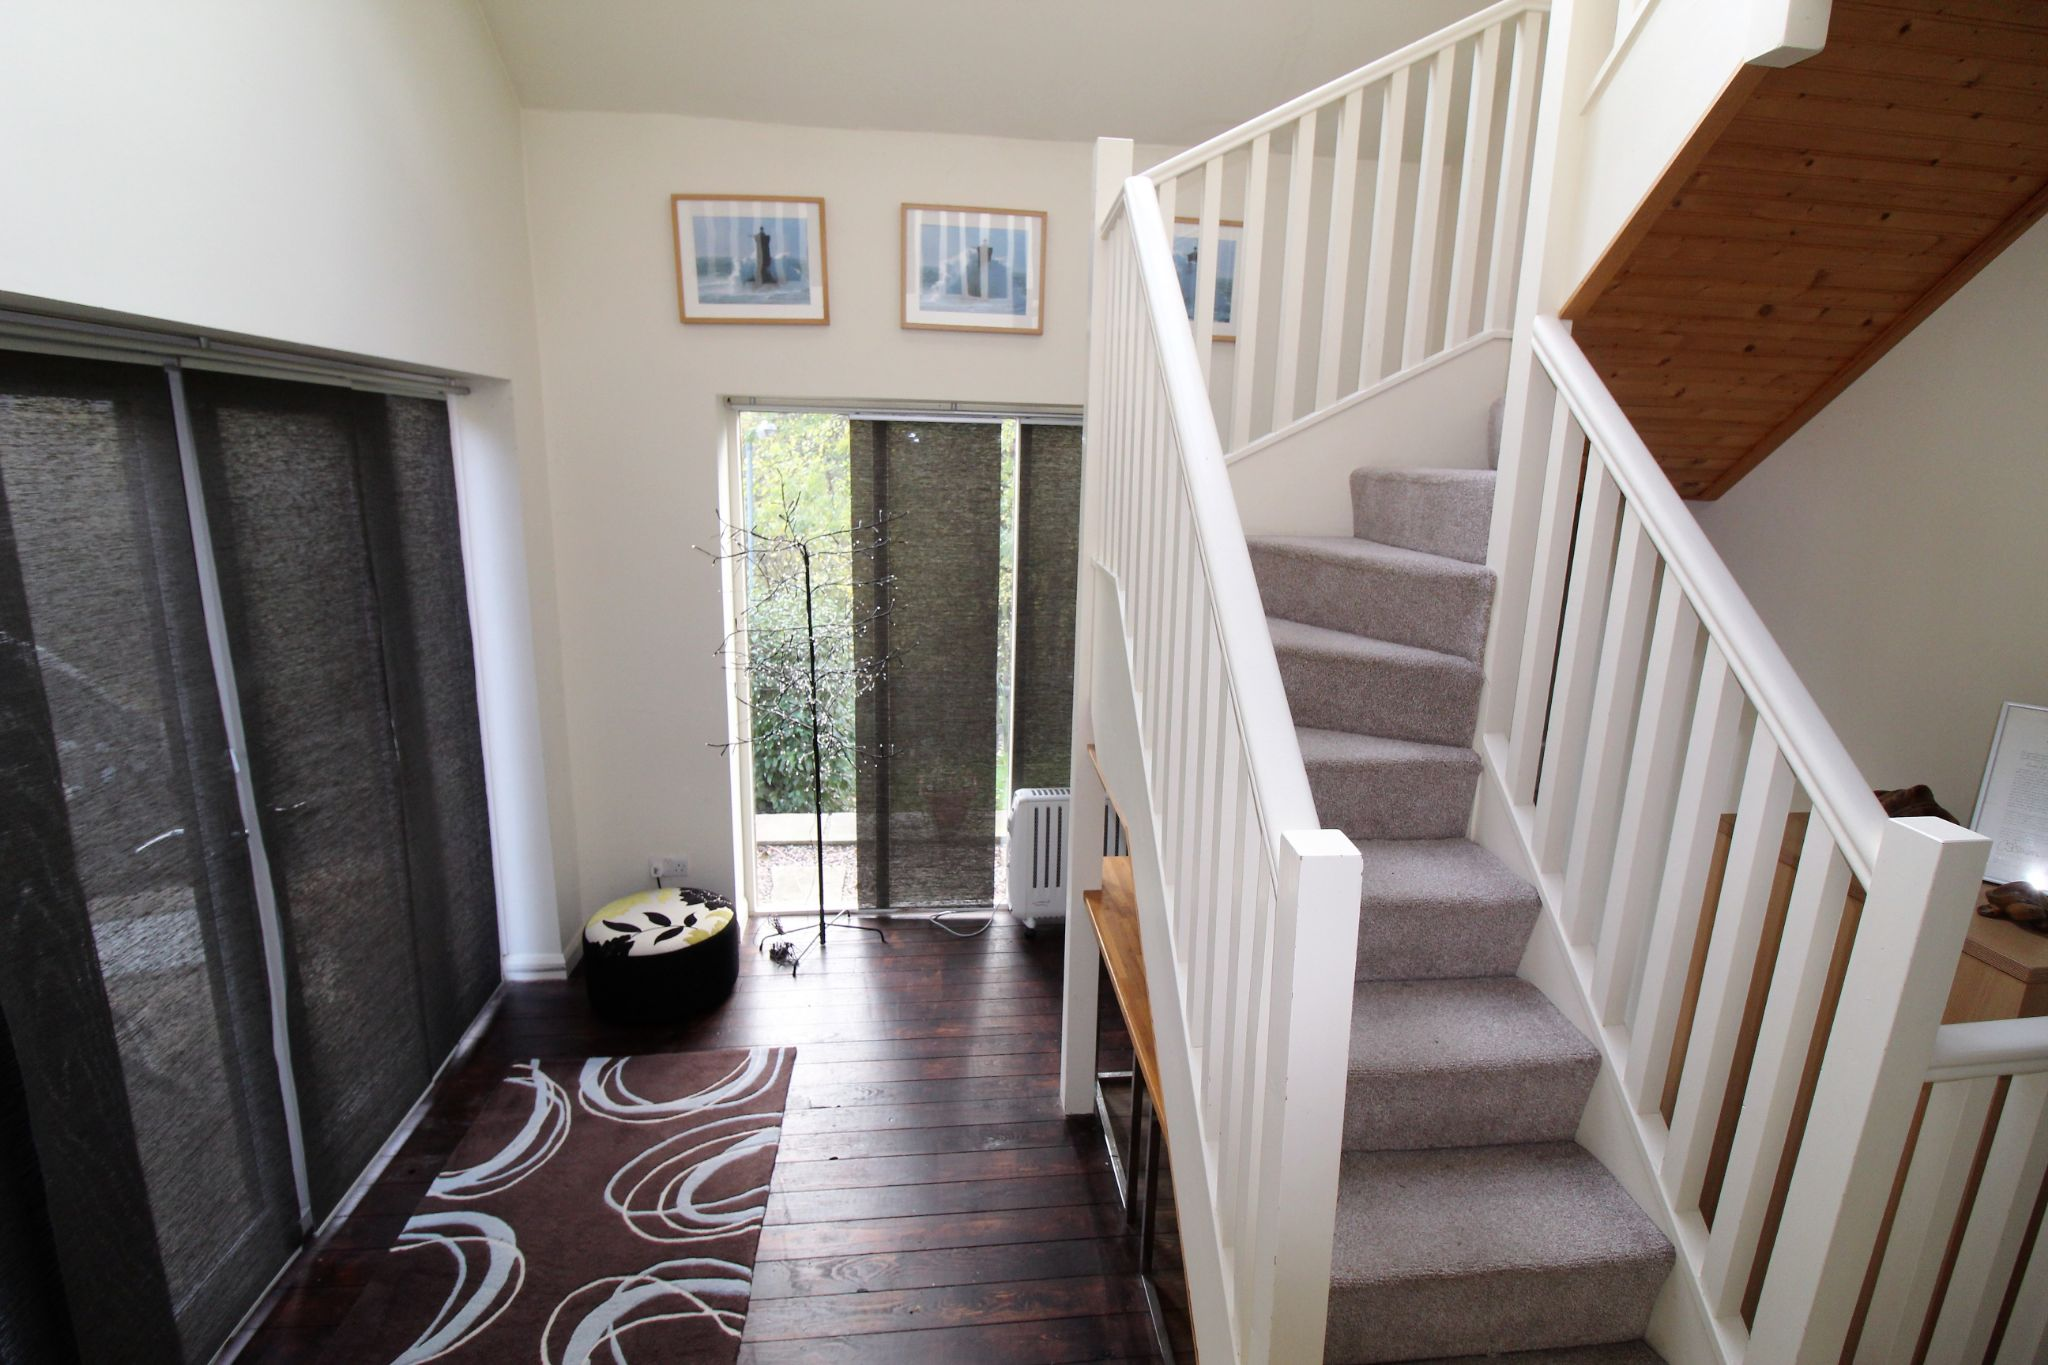 3 bedroom detached house Let in Brighouse - Ground floor hallway